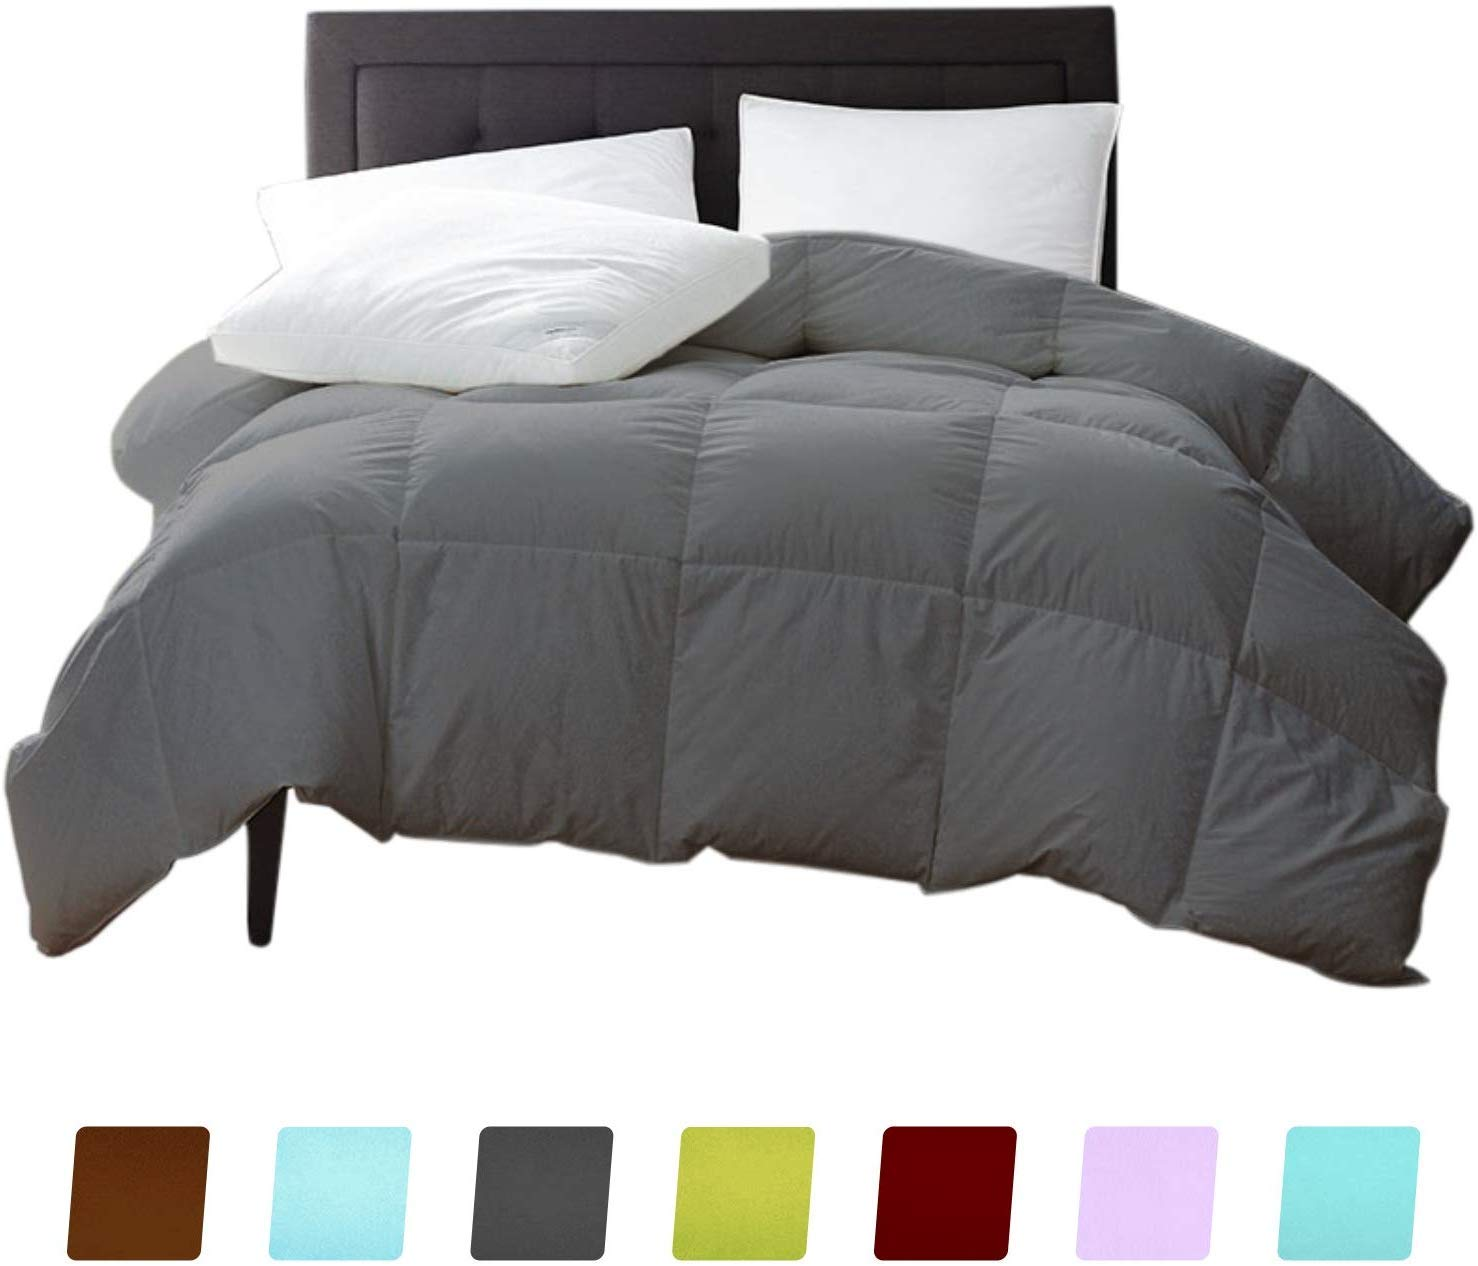 New York Mercado 100% Egyptian Cotton Comforter Luxury and Premium Quality Quilted with Corner Tabs 500 GSM 1000 TC All Season Warm Fluffy Ultra-Soft Comforter King/Cal-King, Silver Grey by New York Mercado